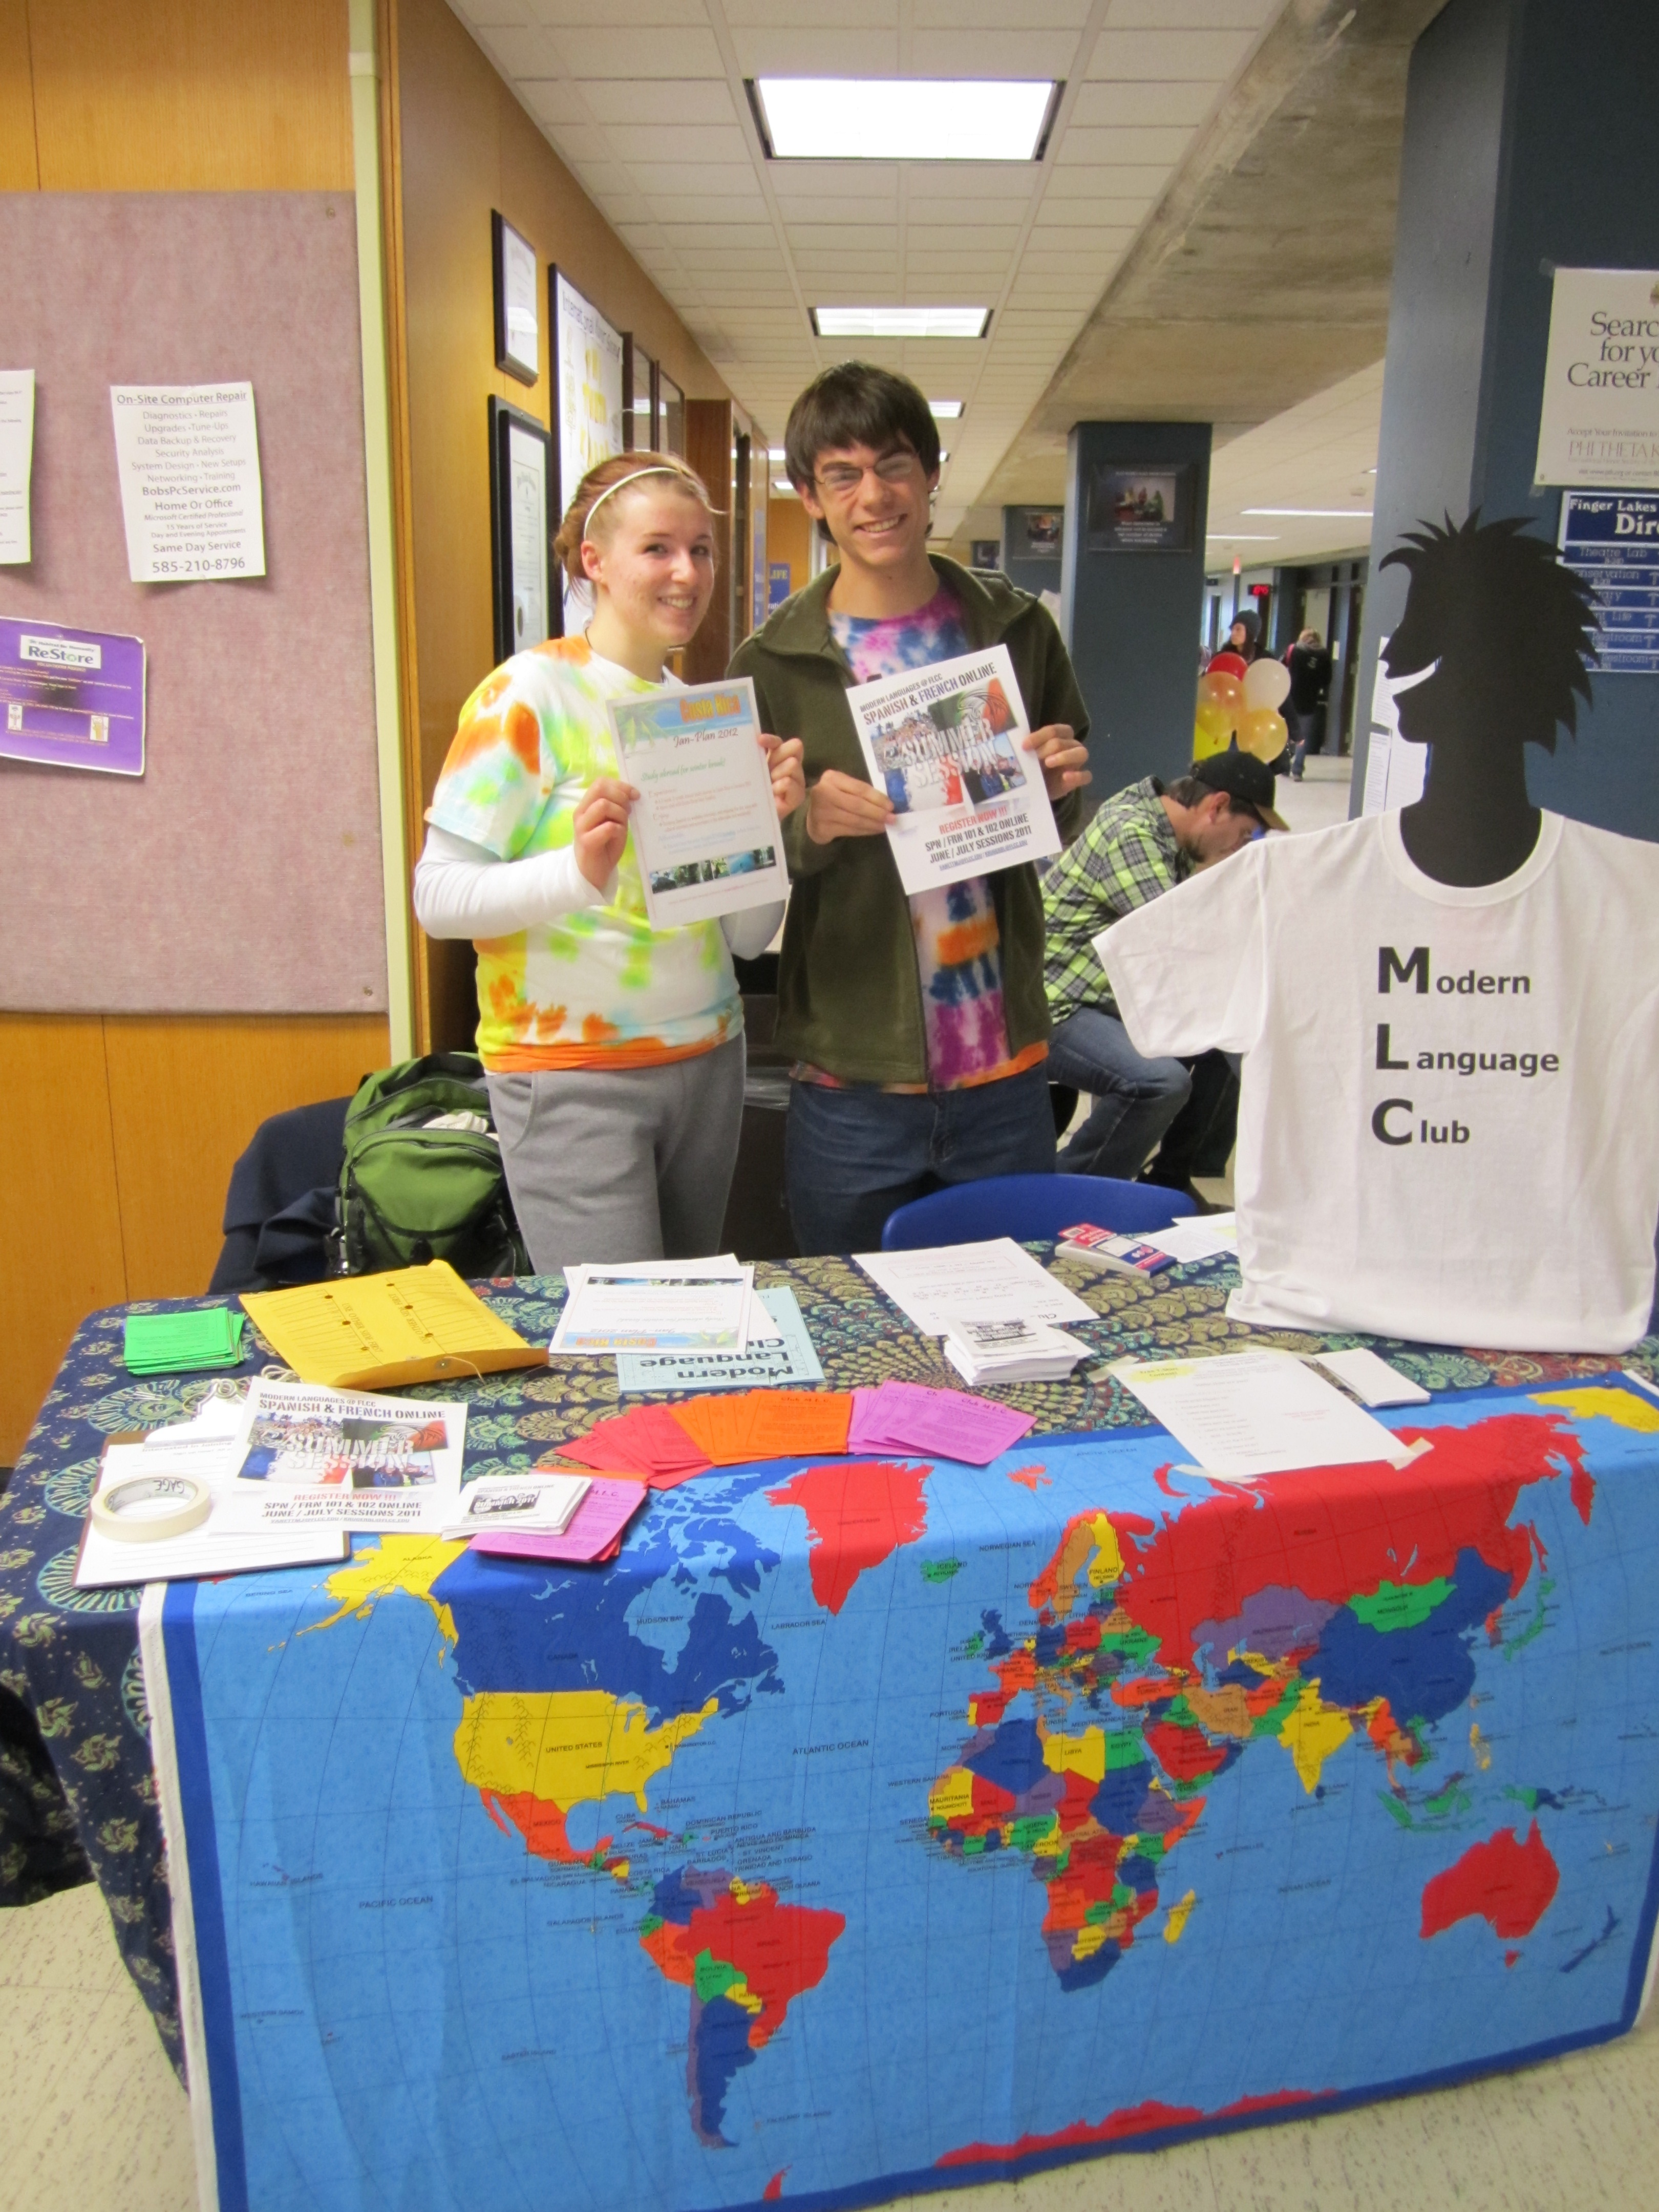 Modern languages @ flcc: on campus photo